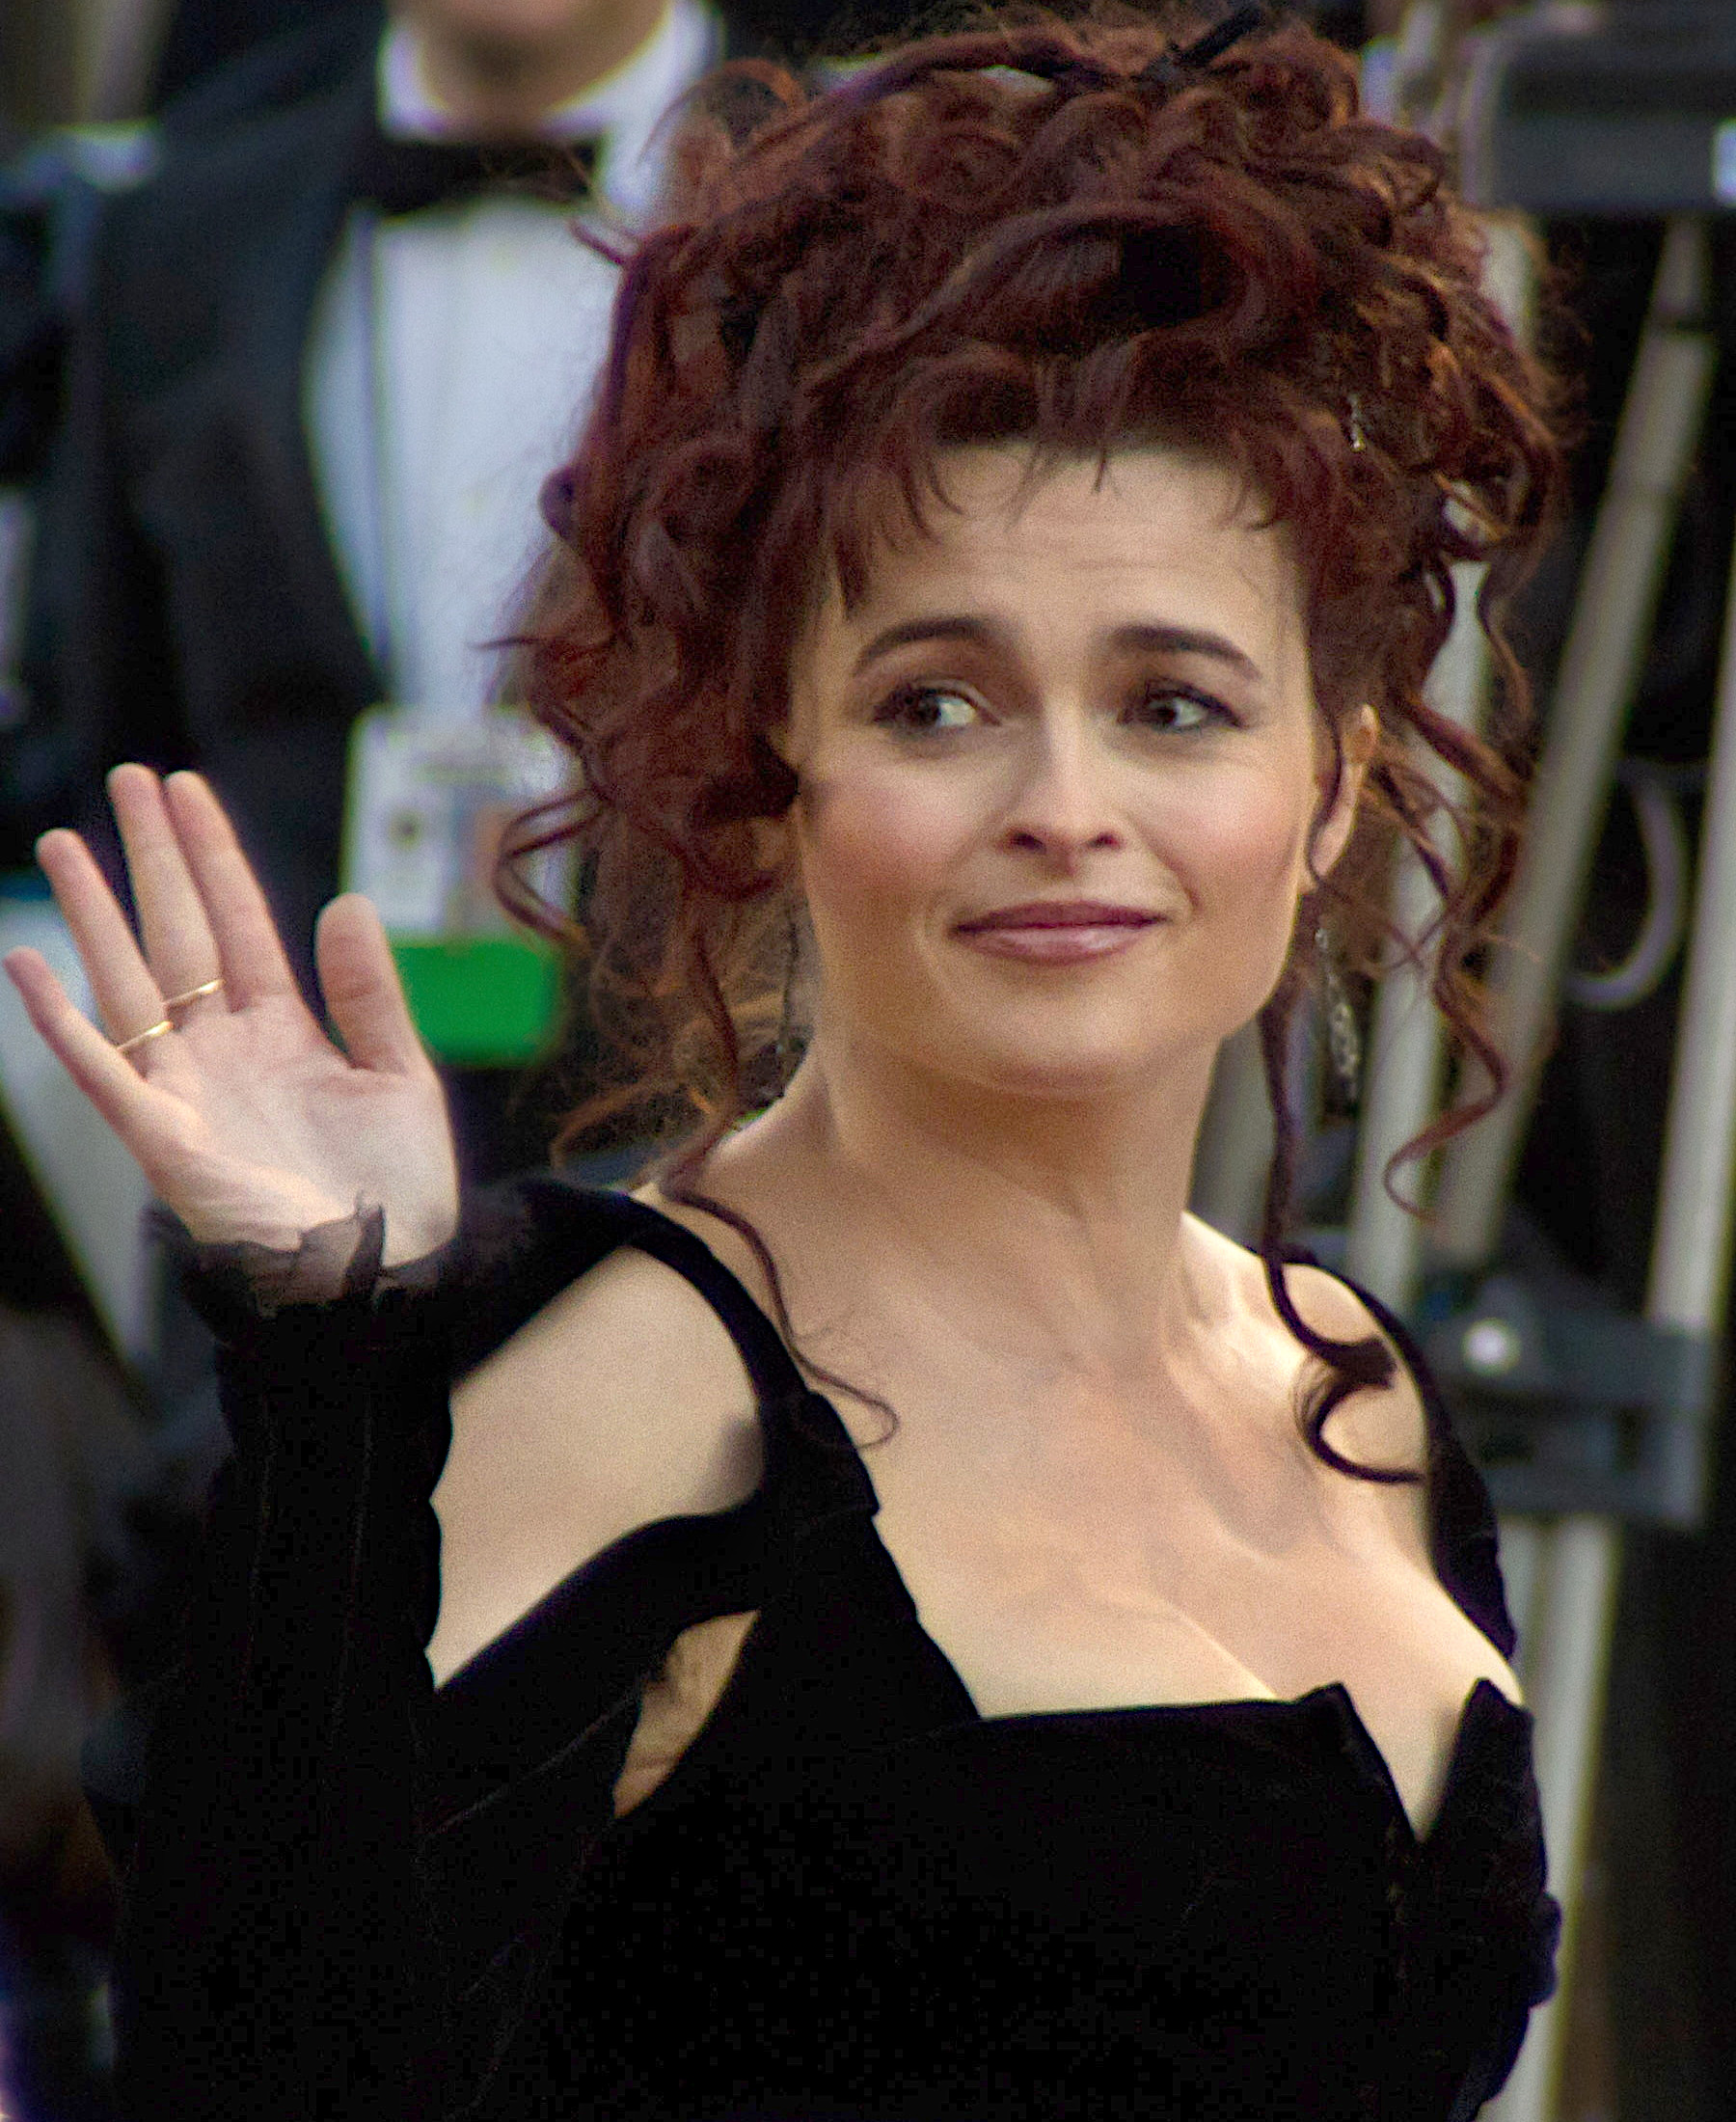 The 52-year old daughter of father Raymond Bonham Carter and mother Elena Propper de Callejón Helena Bonham Carter in 2018 photo. Helena Bonham Carter earned a  million dollar salary - leaving the net worth at 30 million in 2018